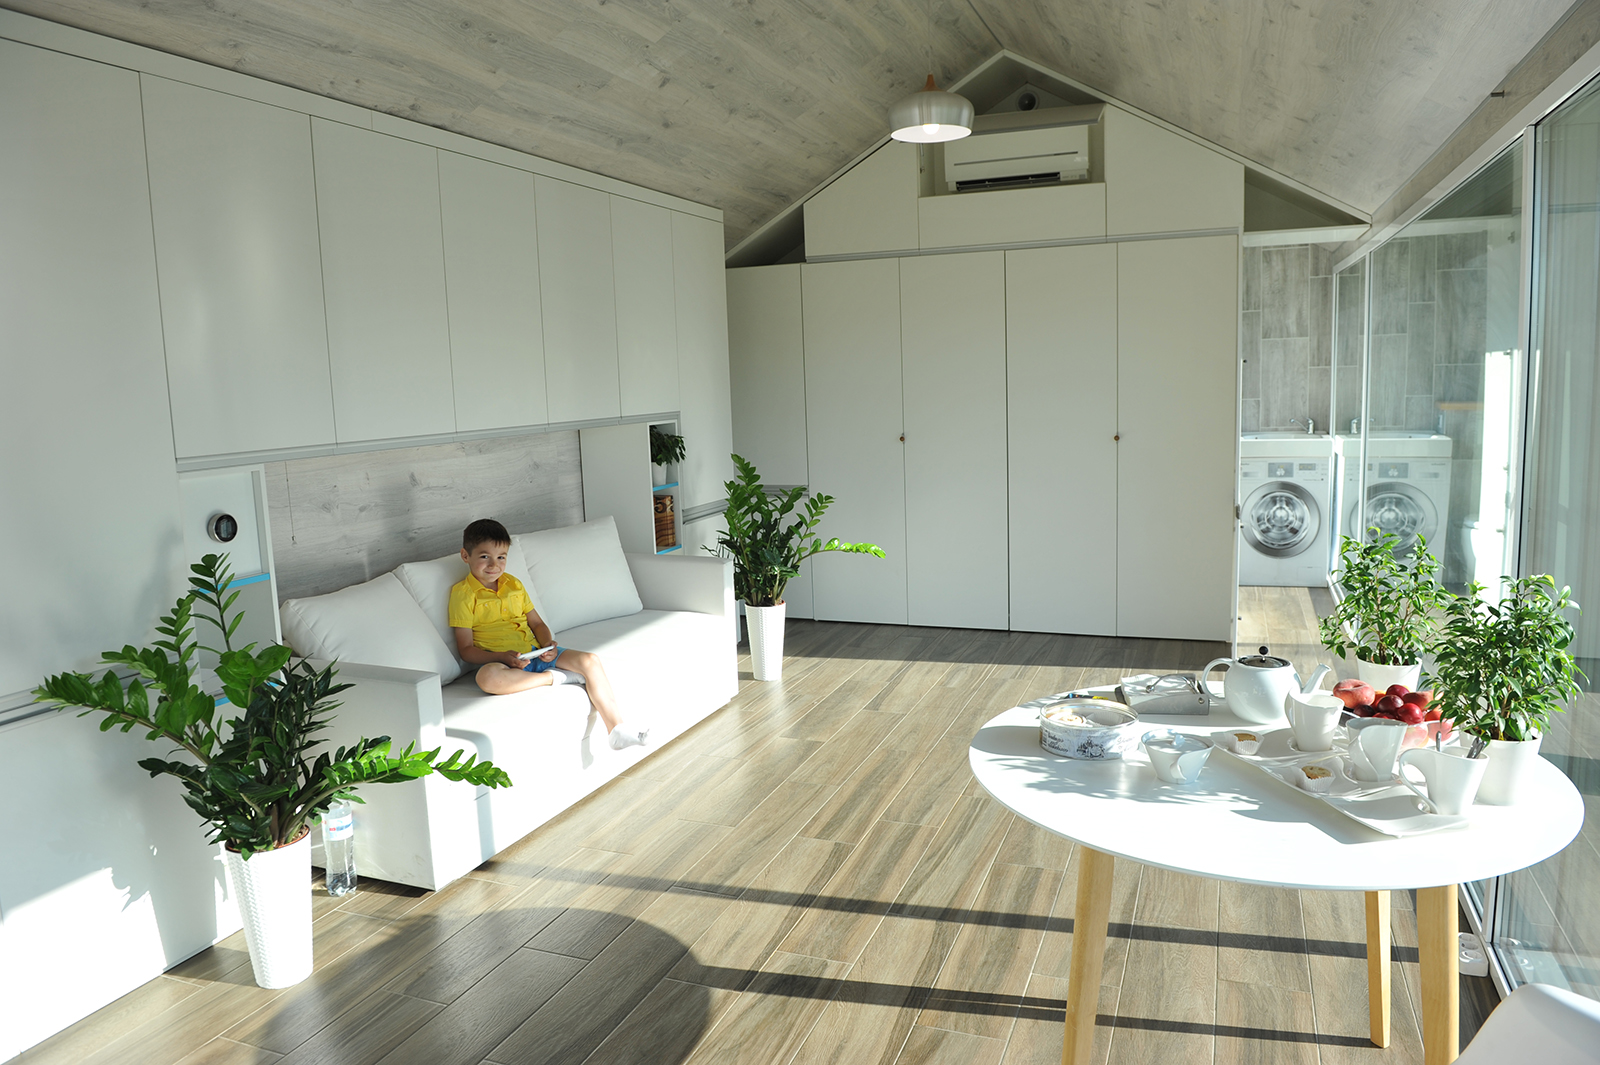 This Tiny Prefab Home Lets You Live in Luxury Completely Off-the-Grid